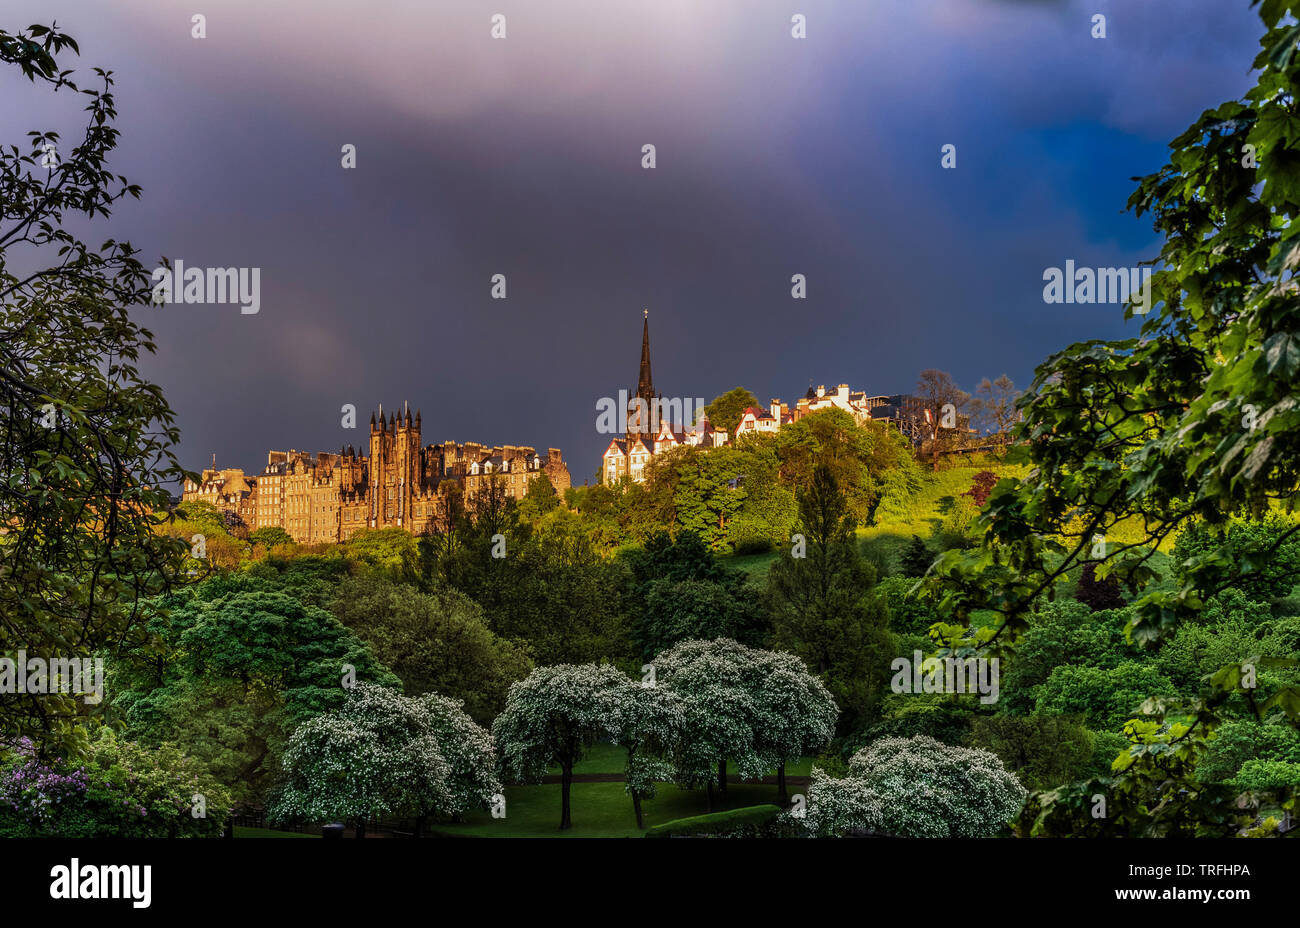 View of The Mound, St Giles Cathedran spire and Ramsay Gardens from Princes Street in dramatic low light, Edinburgh Stock Photo